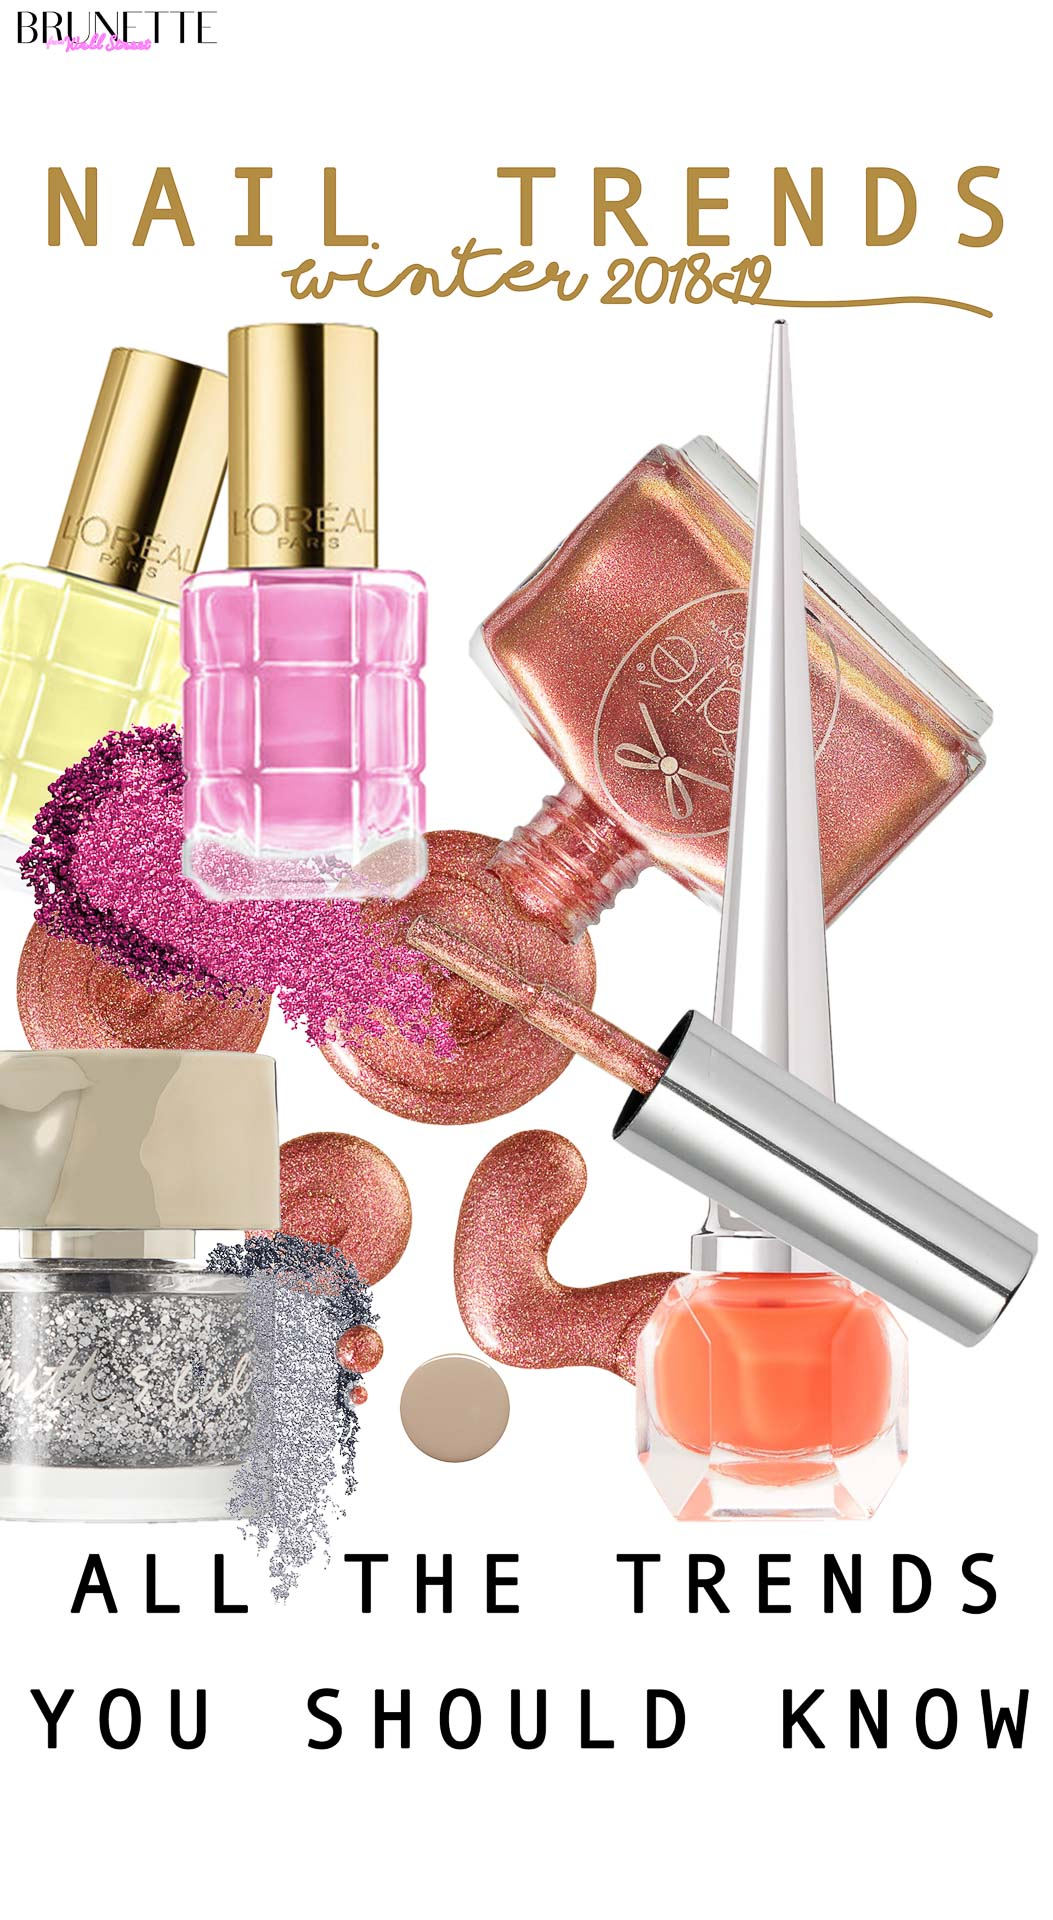 L'oreal pink nail polish, cite, marc jacobs silver polish, Louboutin orange nail polish with text overlay nail trends winter 2018-19 all the trends you should know